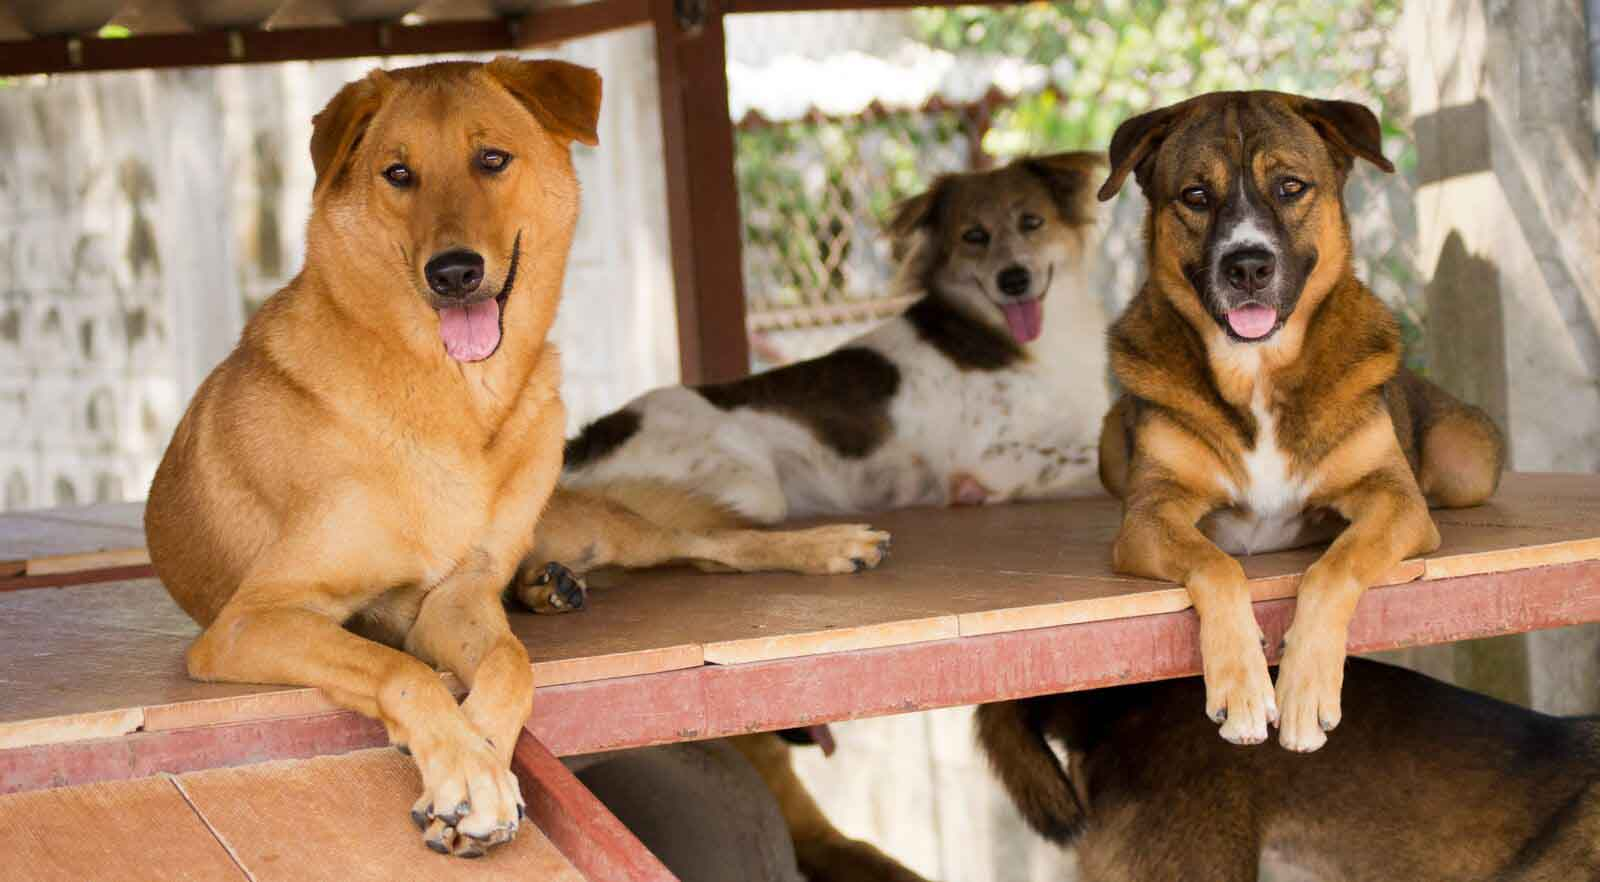 Dogs in their enclosure at the Soi Dog Foundation